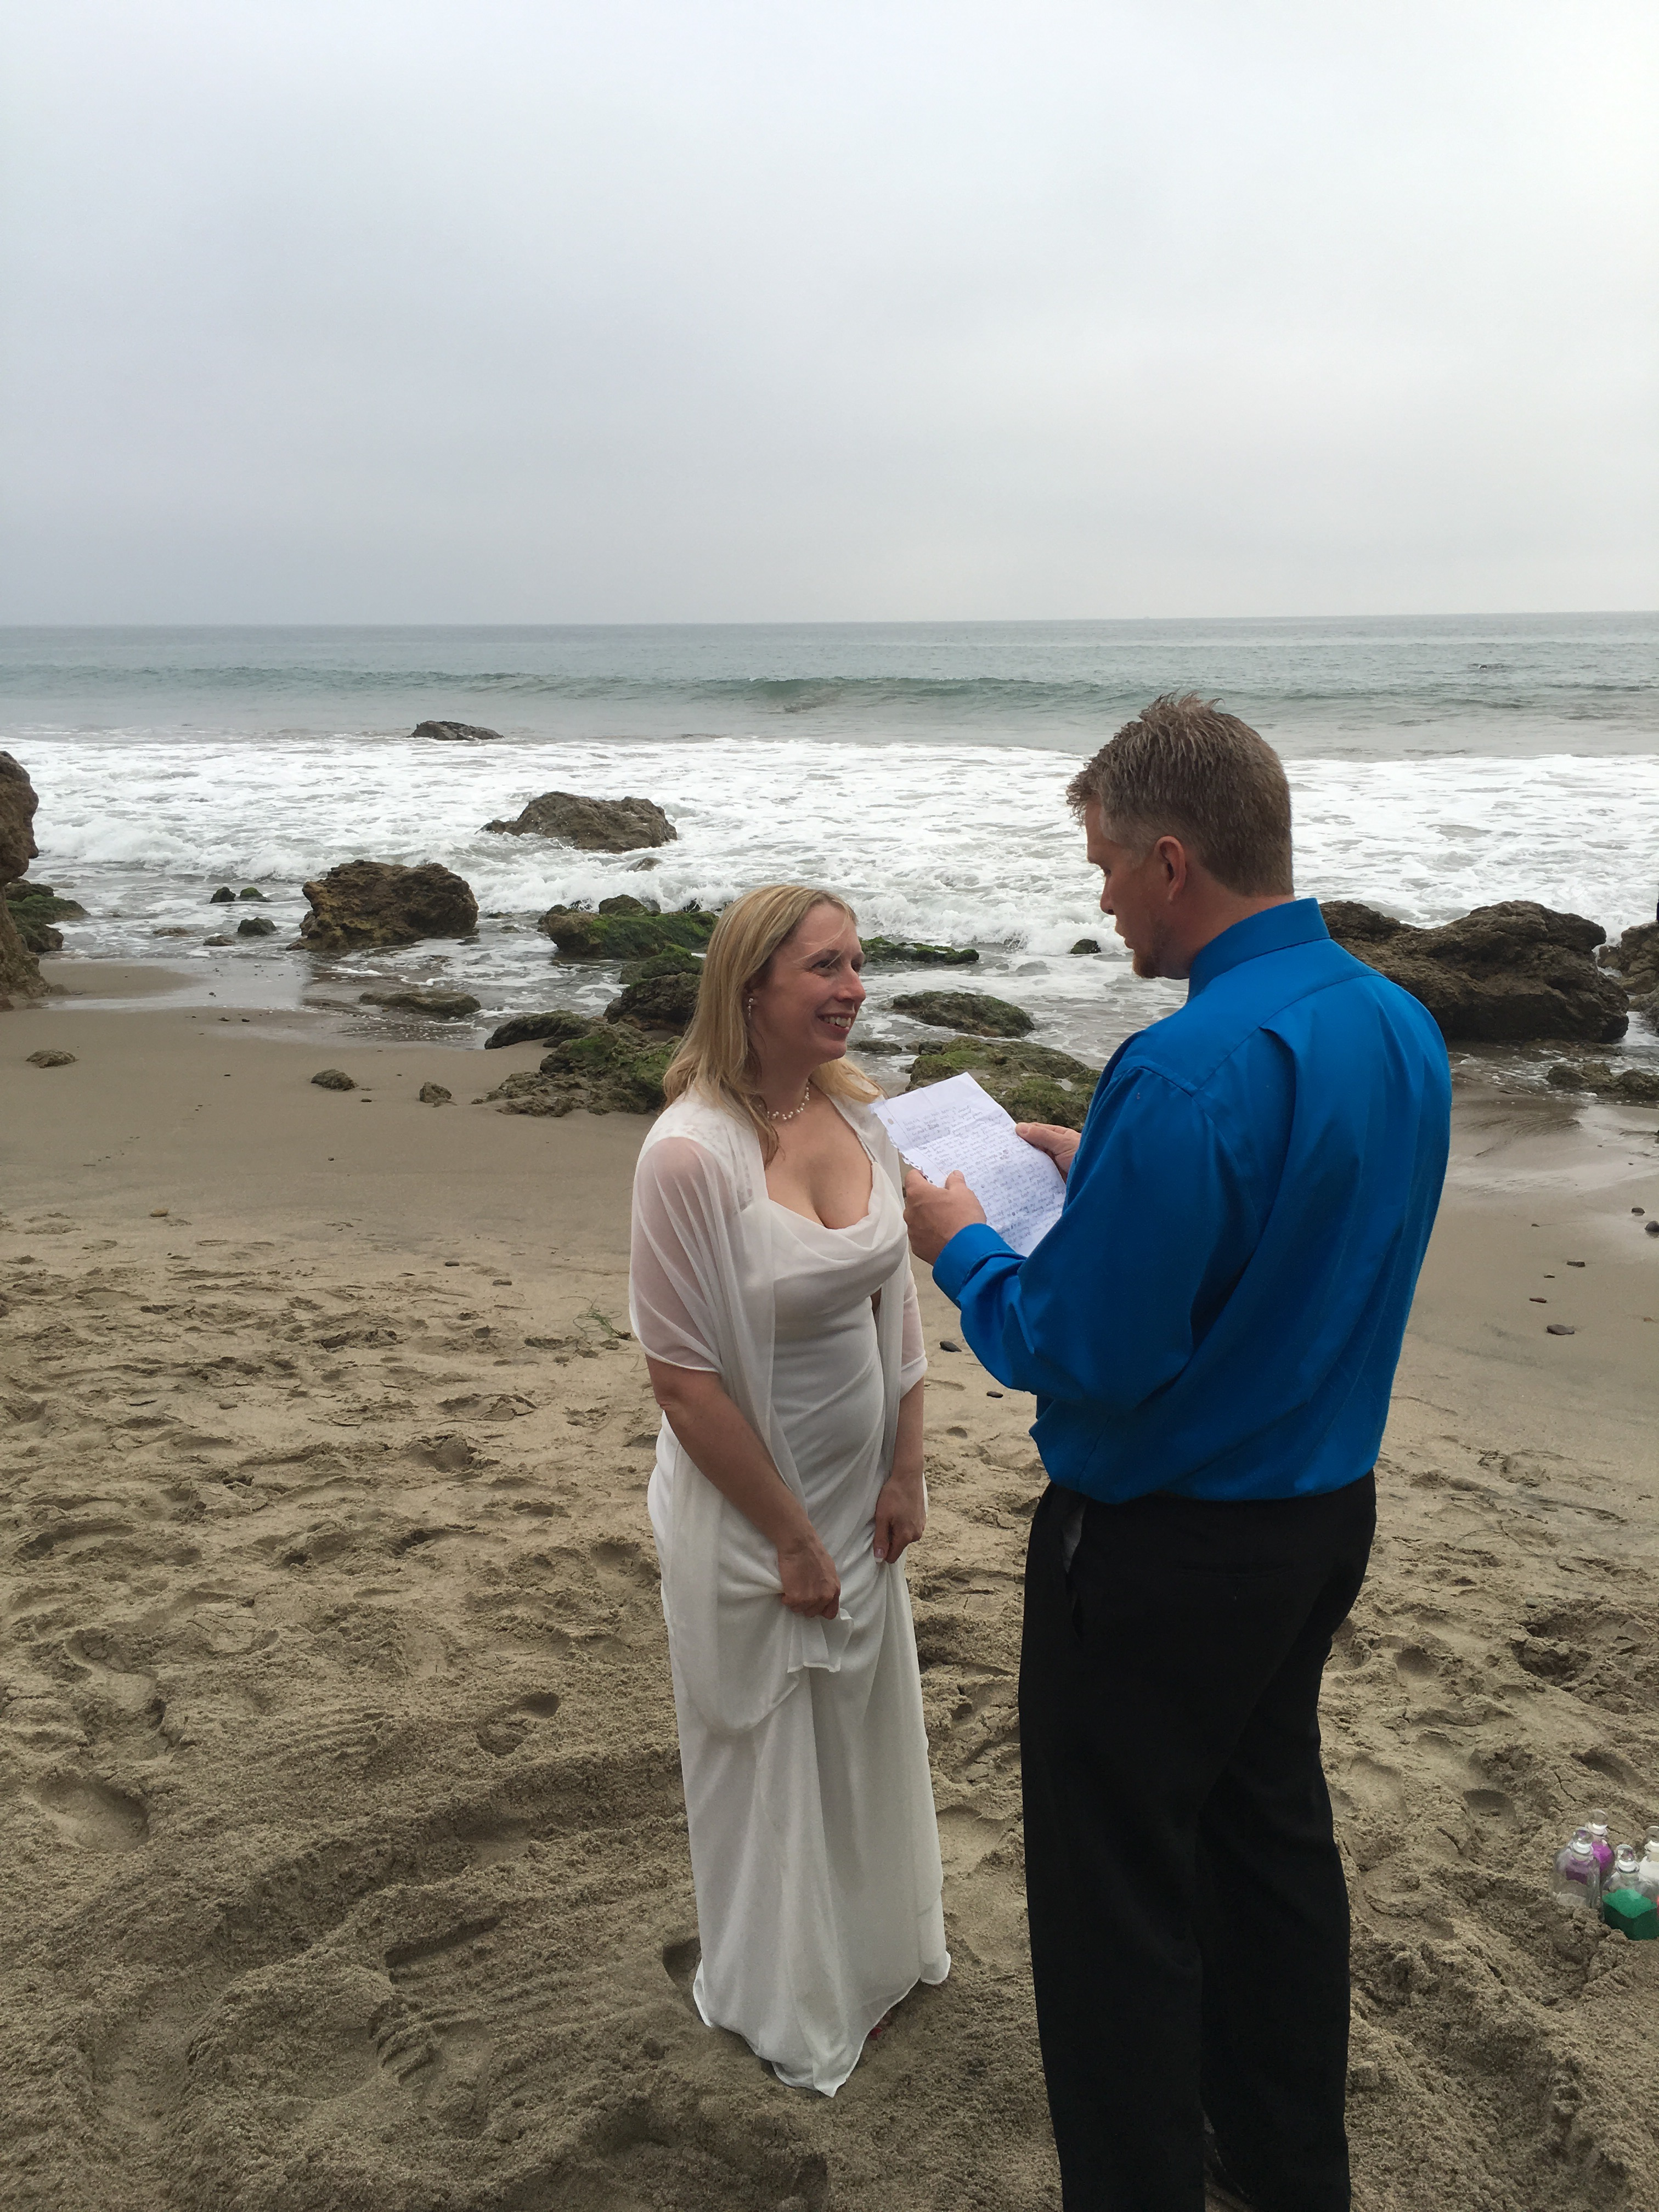 El matador beach wedding in malibu great officiants just a few miles past zuma beach theres a small parking lot if youre lucky enough to get a spot on the first time around consider yourself lucky solutioingenieria Images